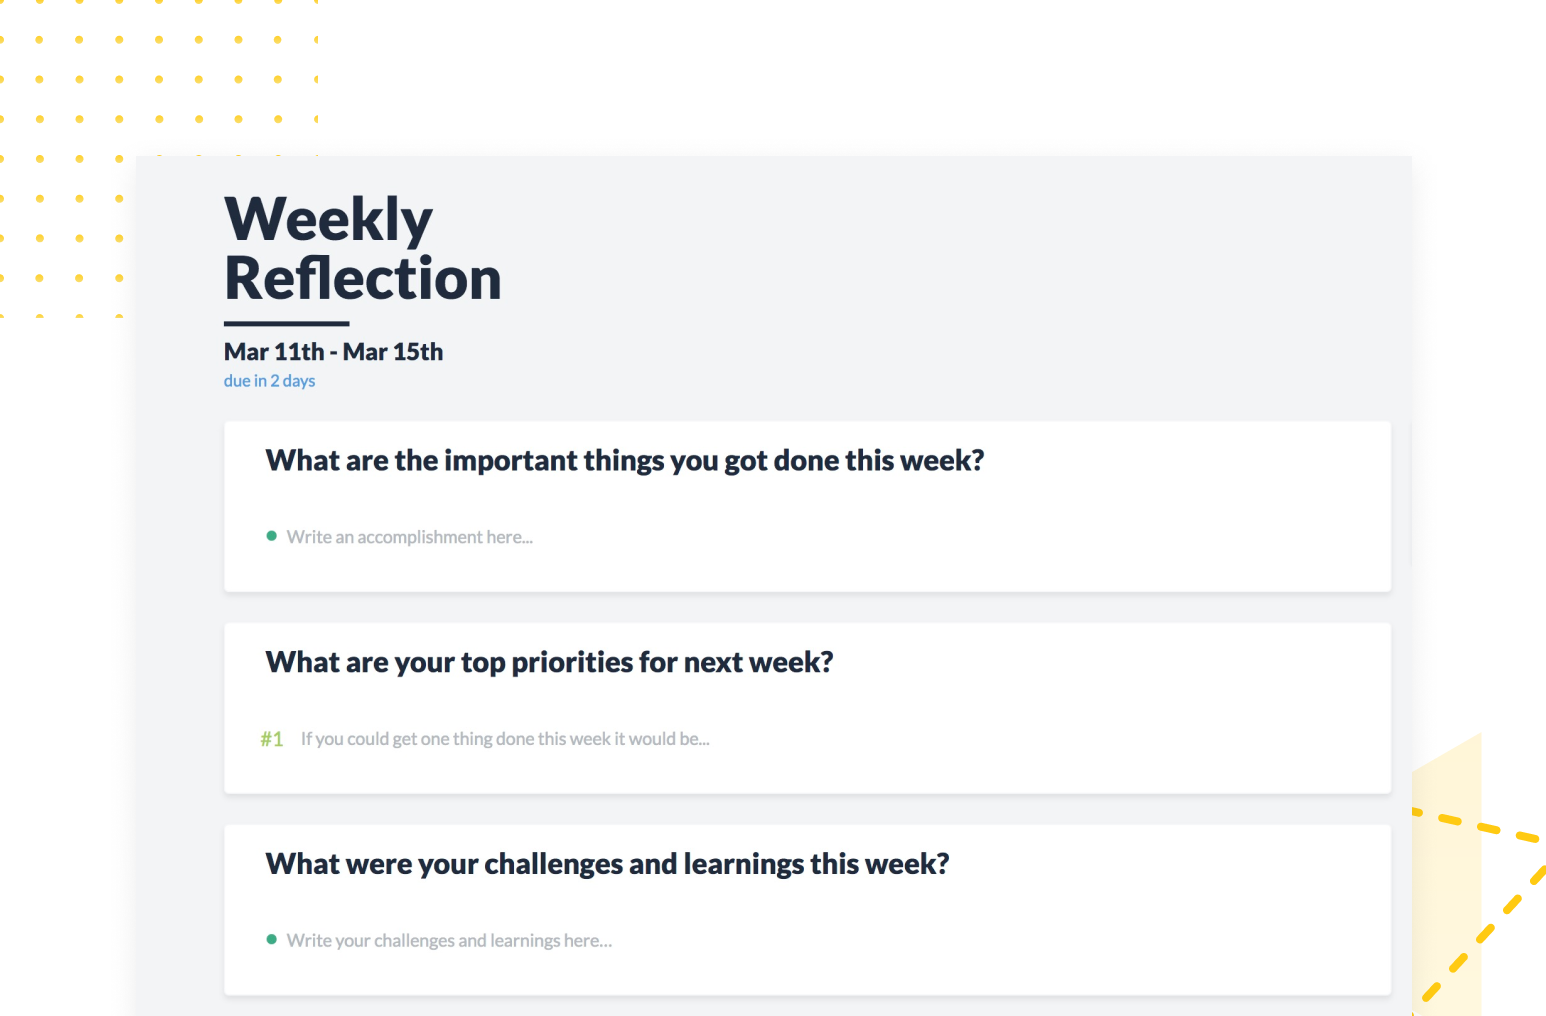 Weekly reflections eliminate status update emails and meetings